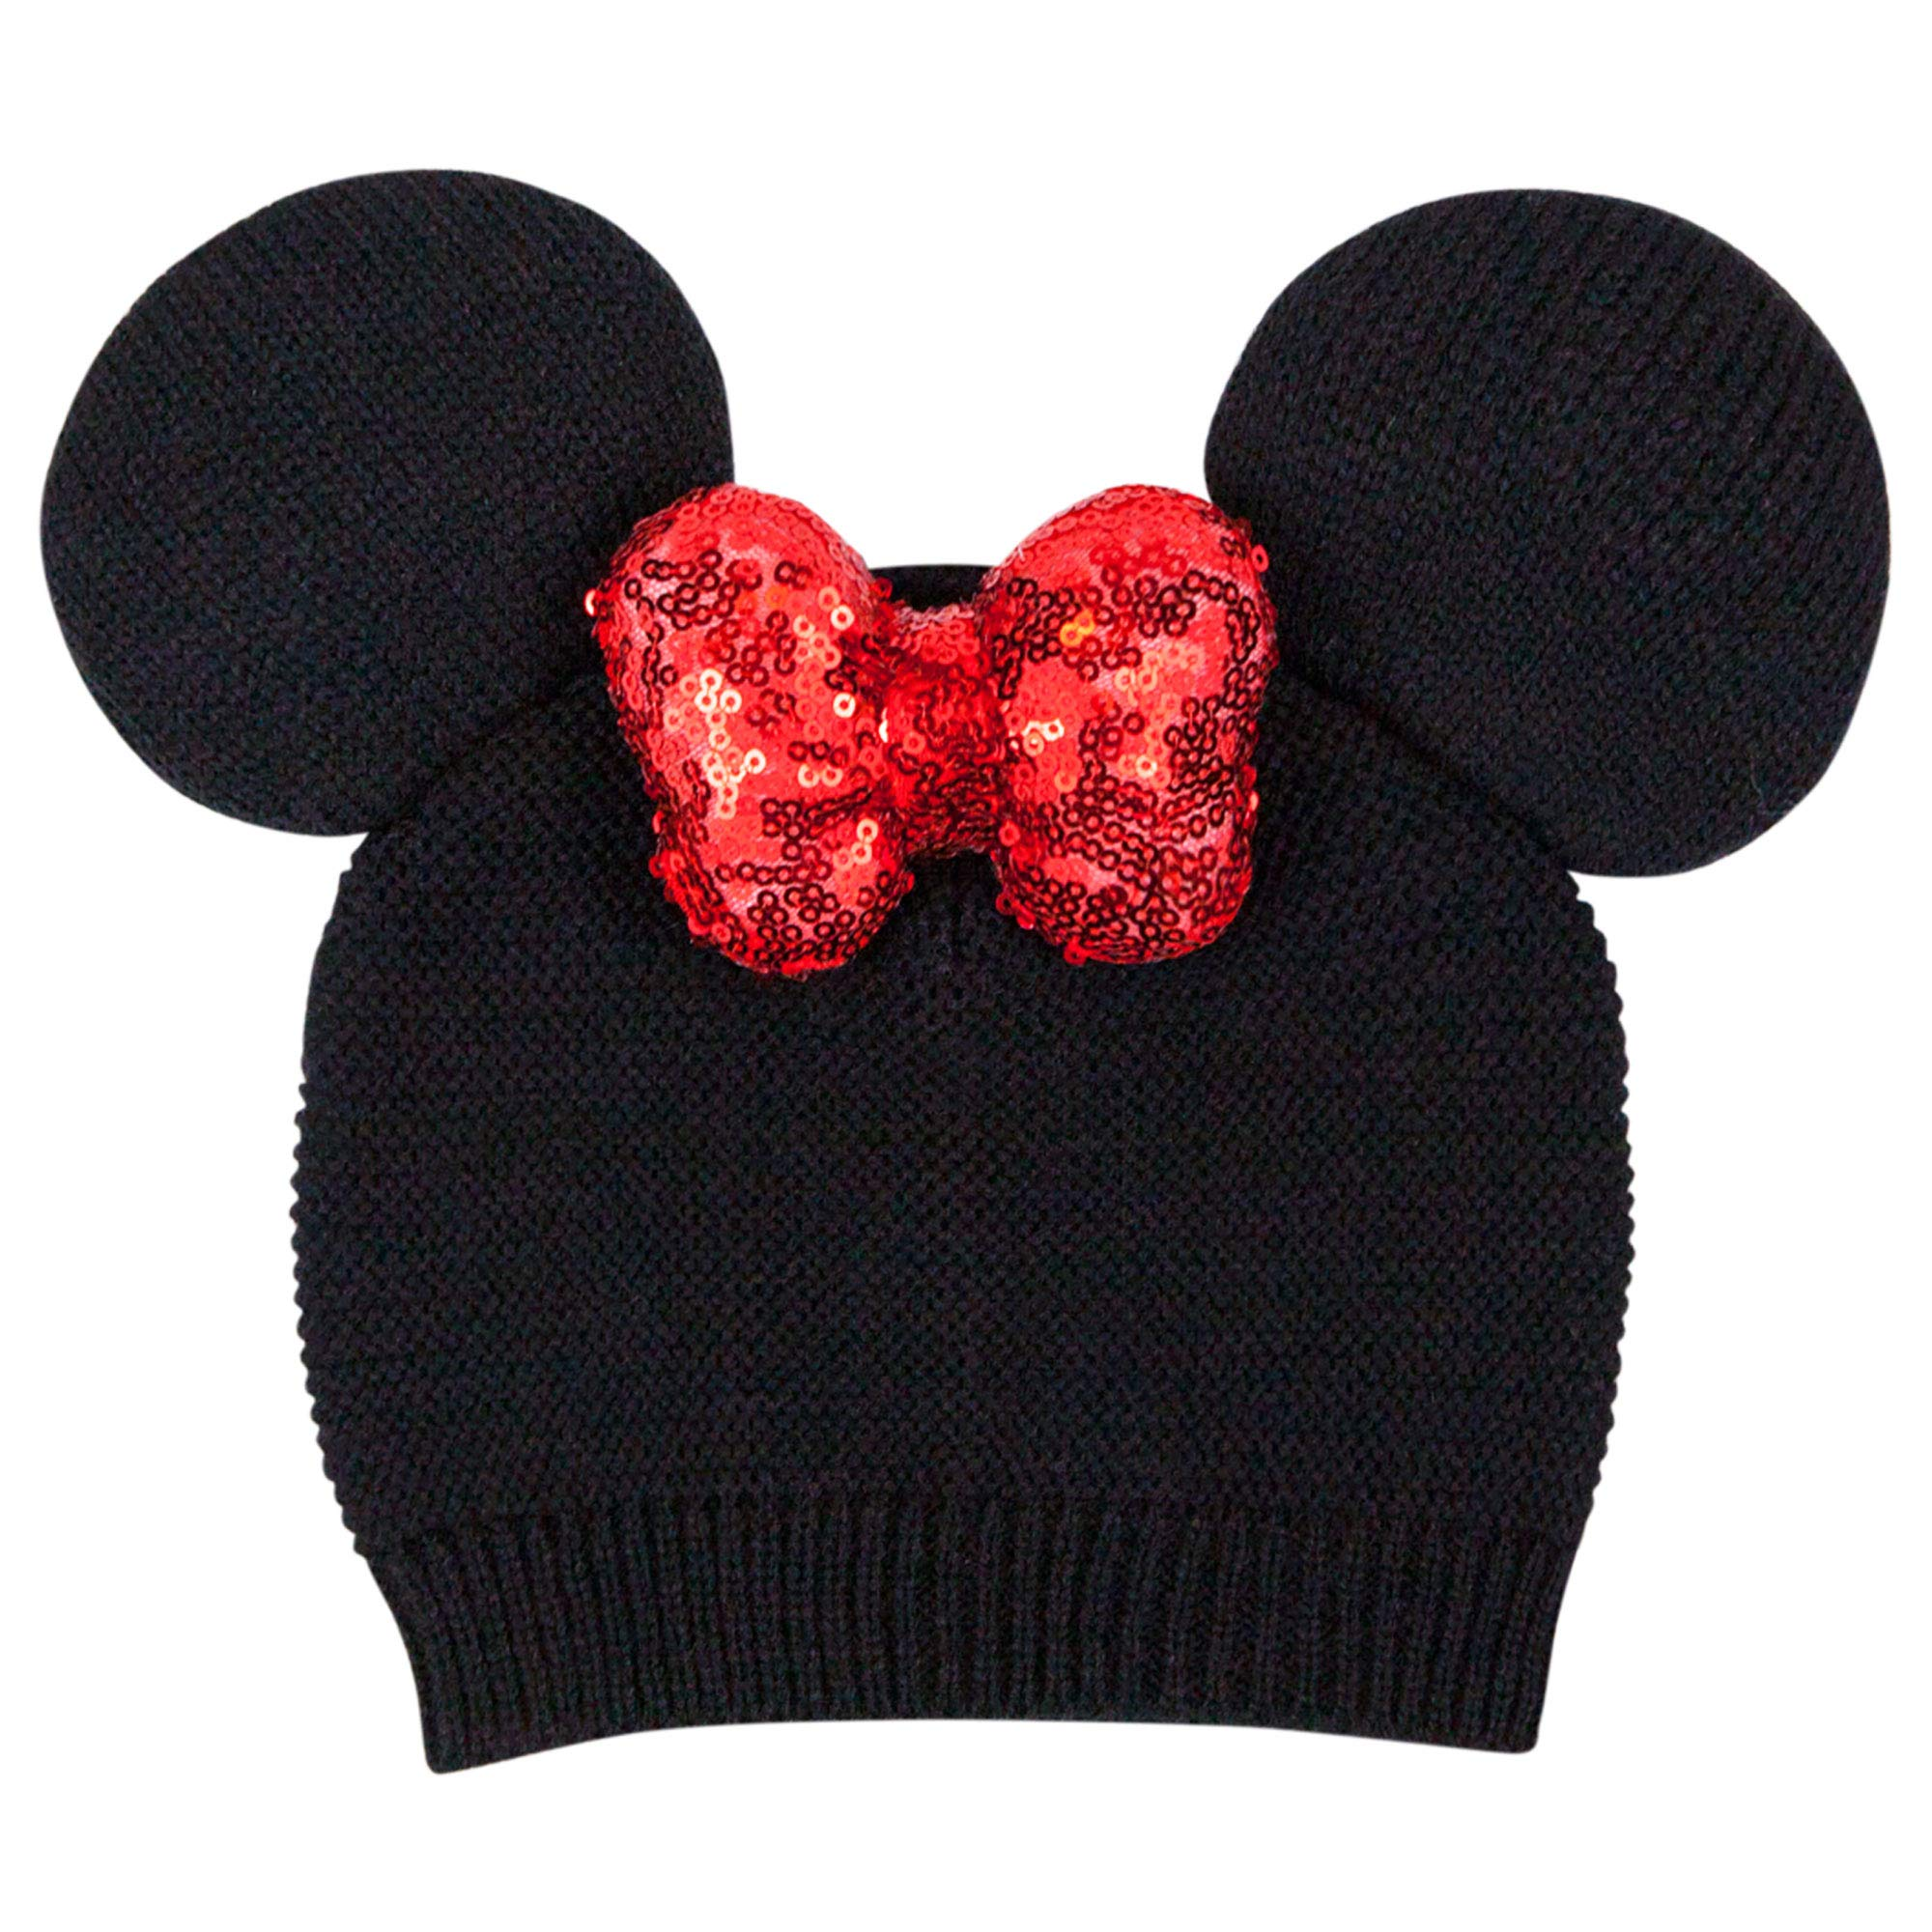 Disney Baby Minnie Mouse Ears Knit Beanie Hat with Red Sparkle Sequin Bow 0-12 Moths Black by Disney